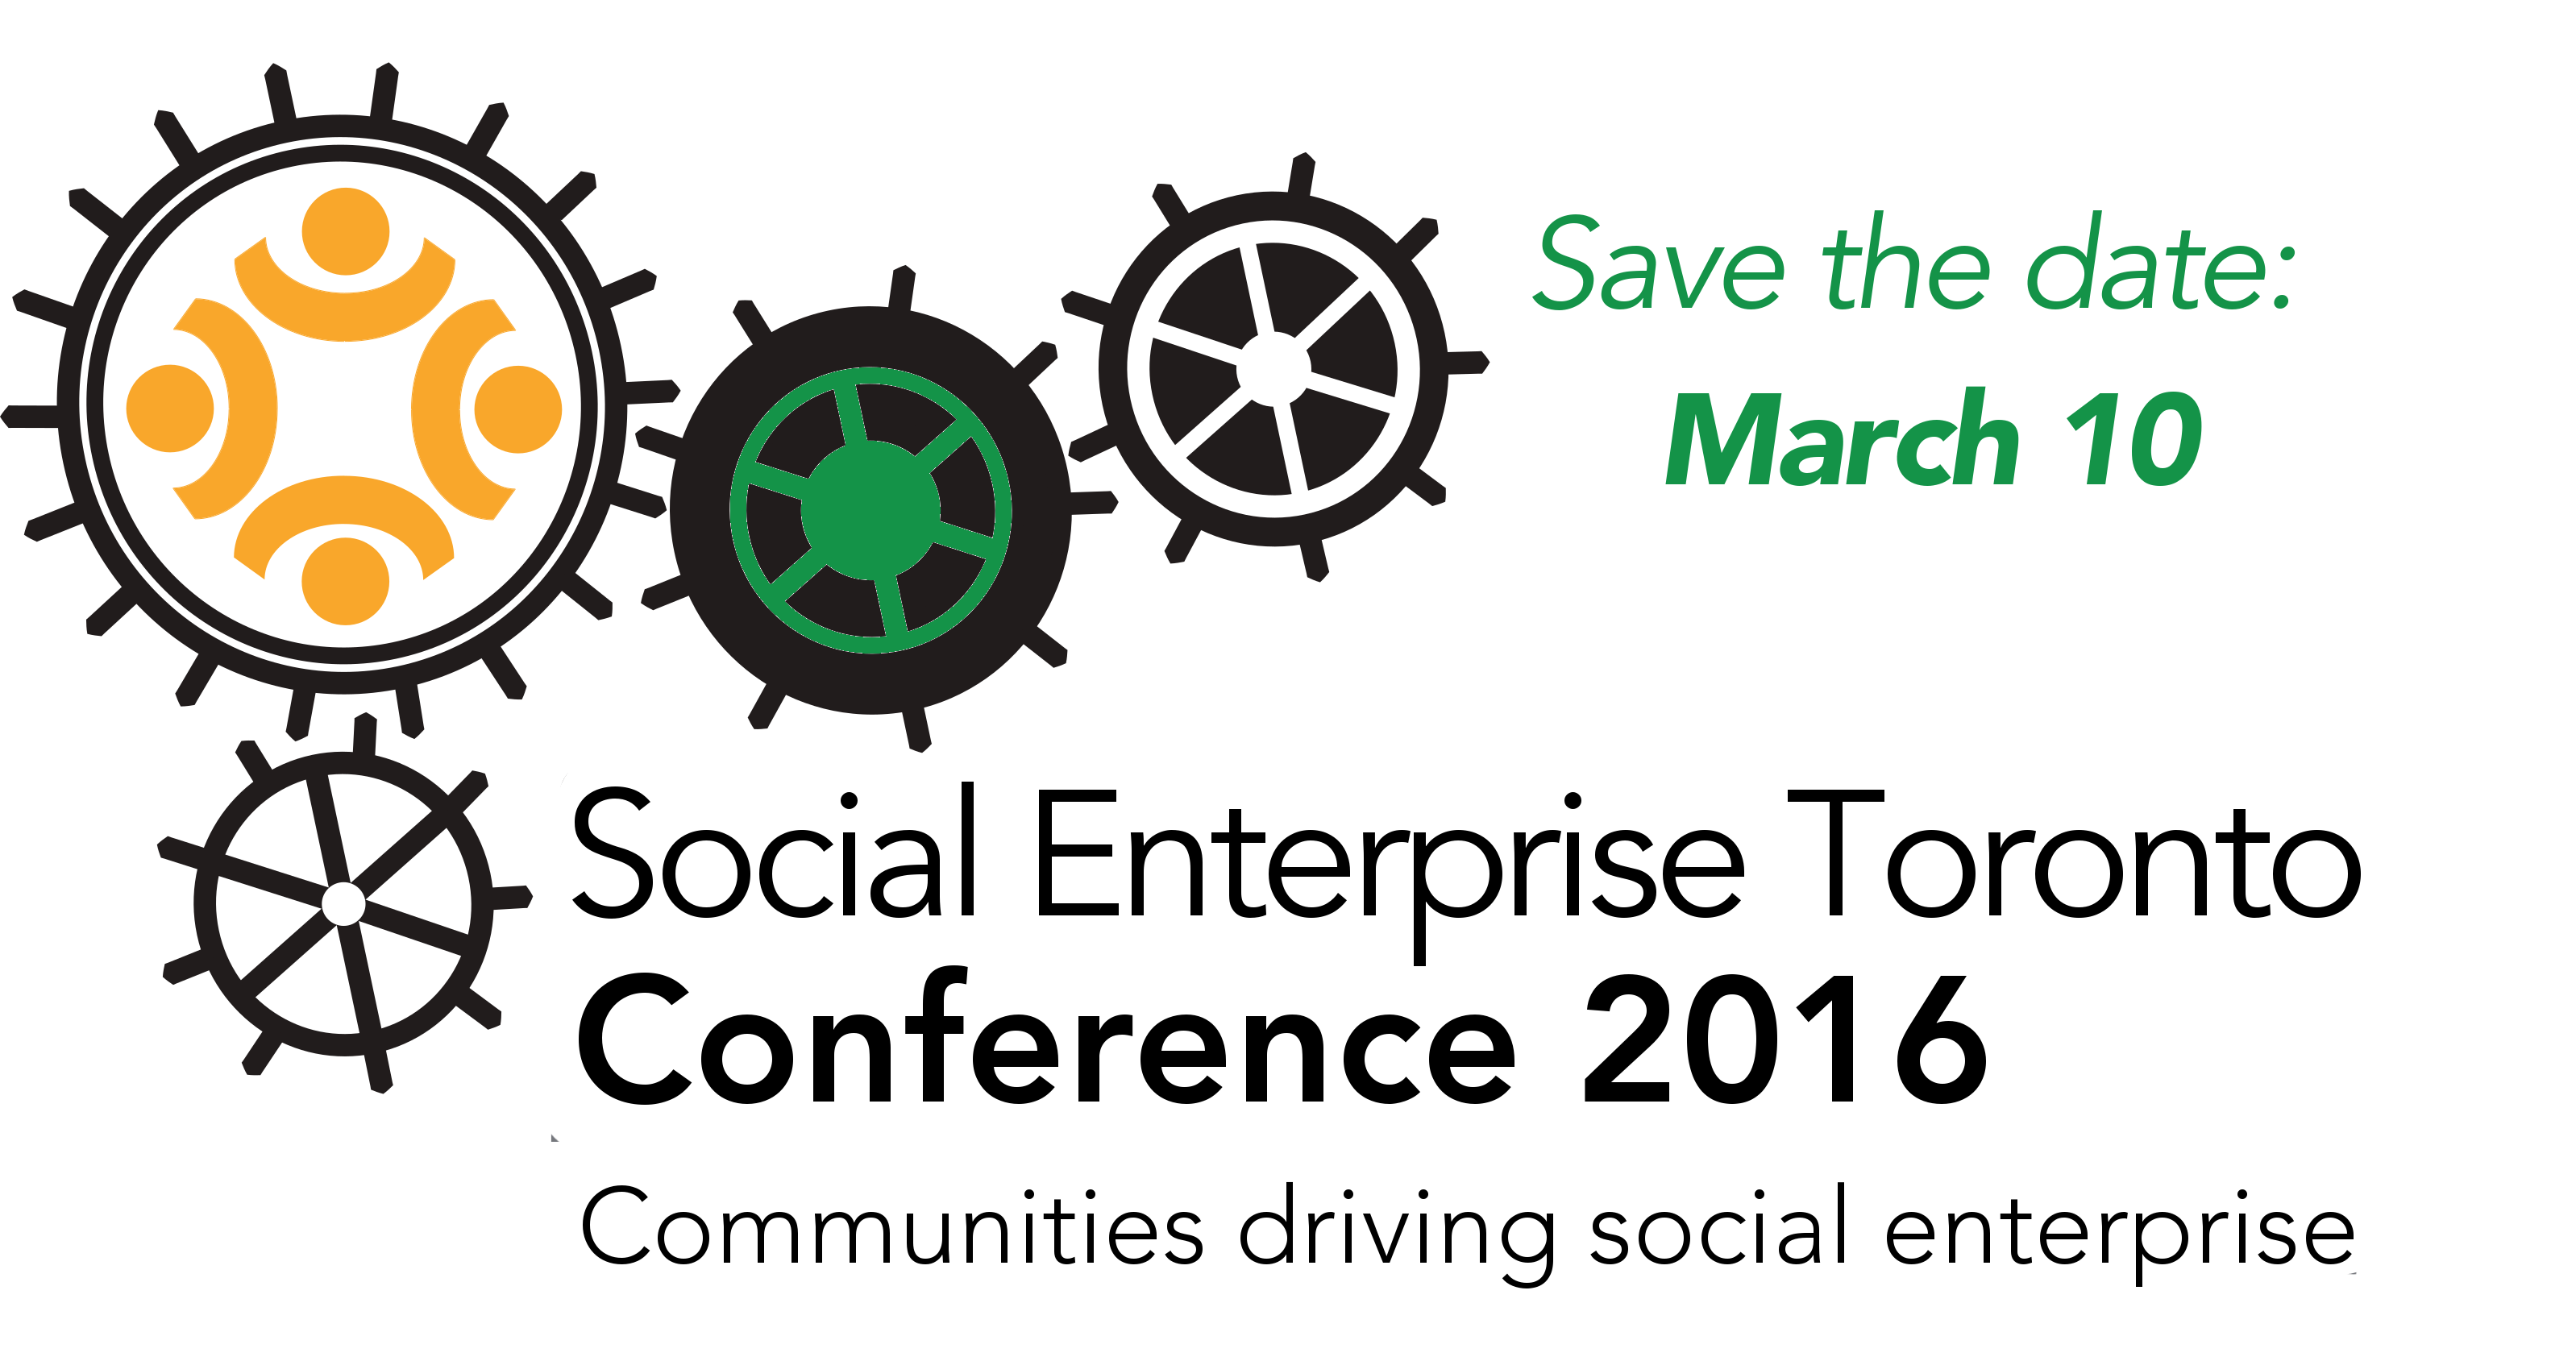 Social Enterprise Toronto Conference 2016: Communities driving social enterprise